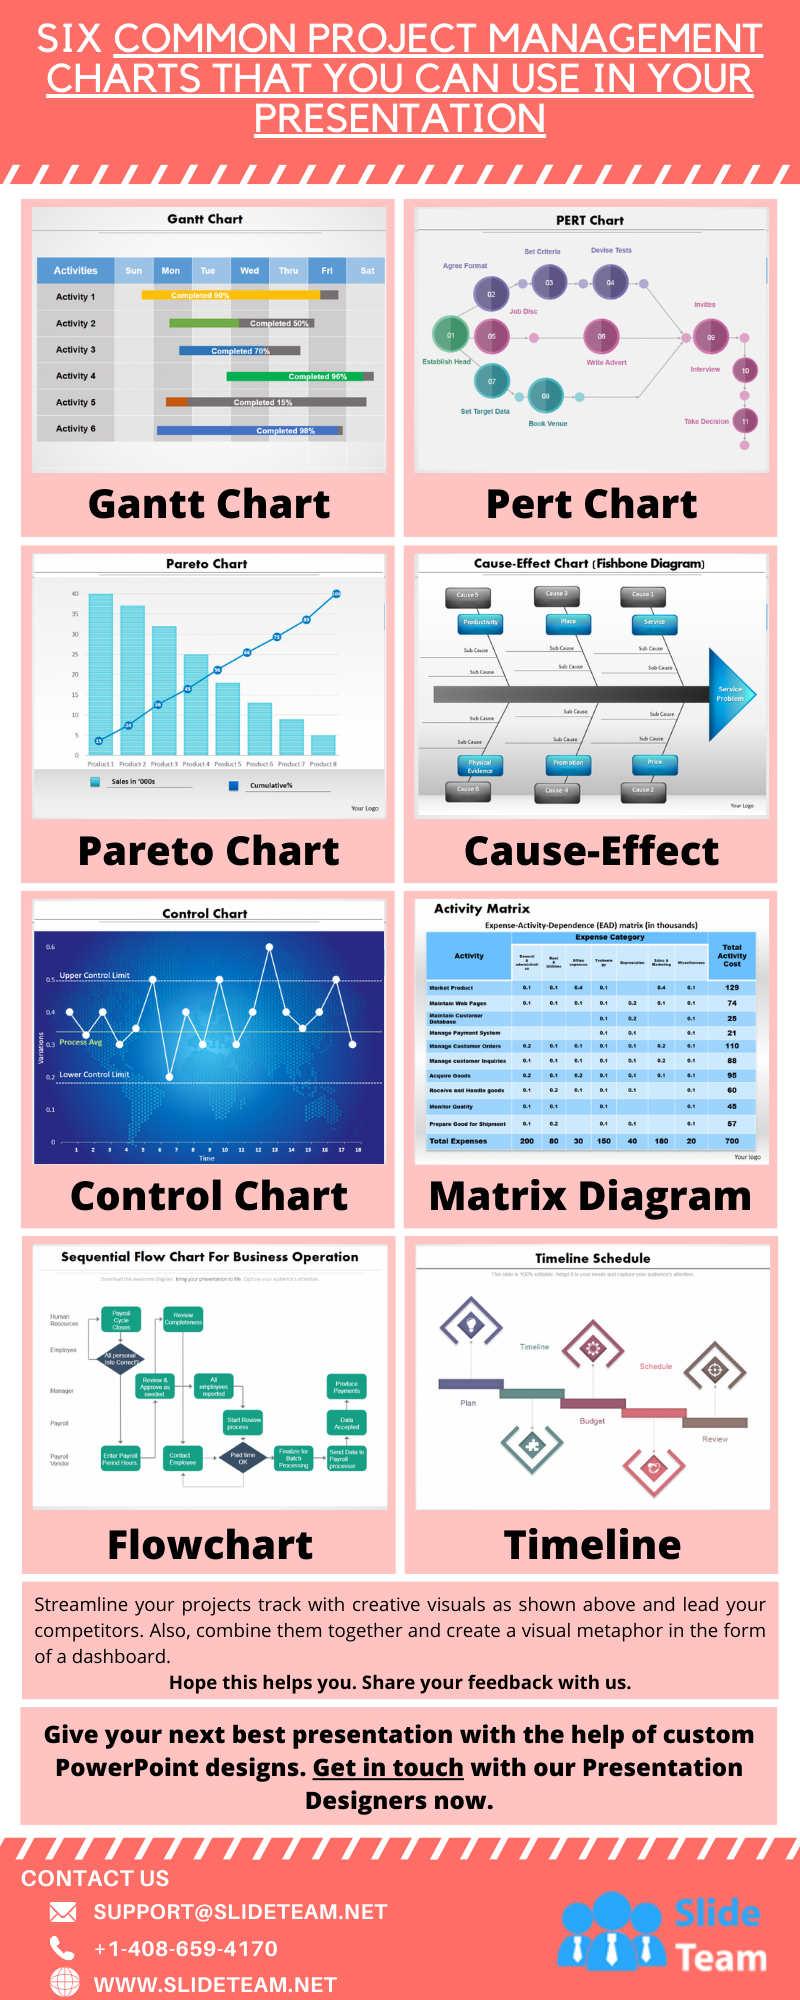 Six Common Project Management Charts That You Can Use in Your Presentation #infographic #Design & Research #Management Charts #Presentation Charts #Charts #infographics